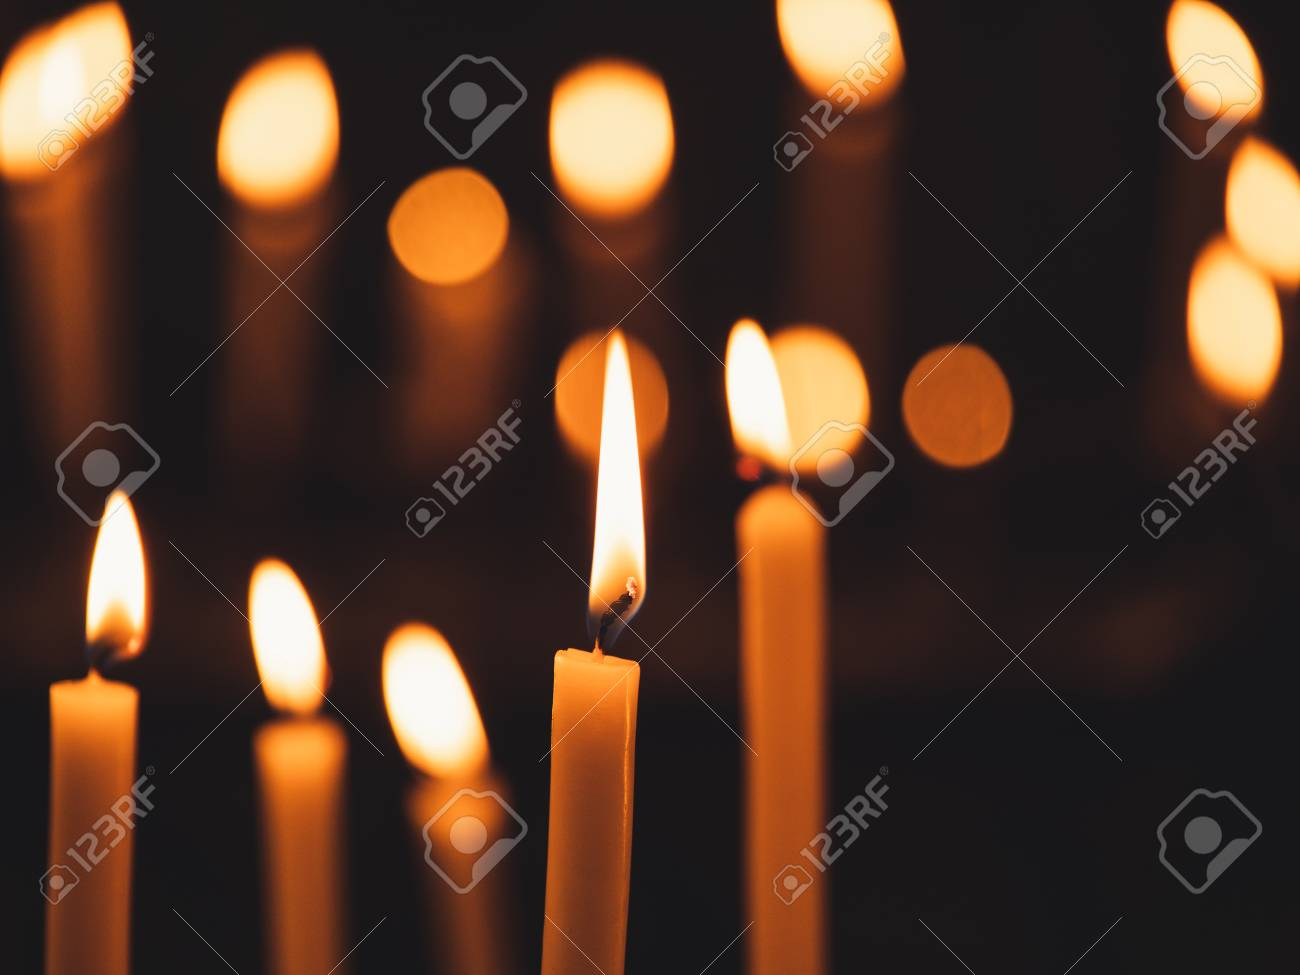 Image of many burning candles with shallow depth of field - 125707124